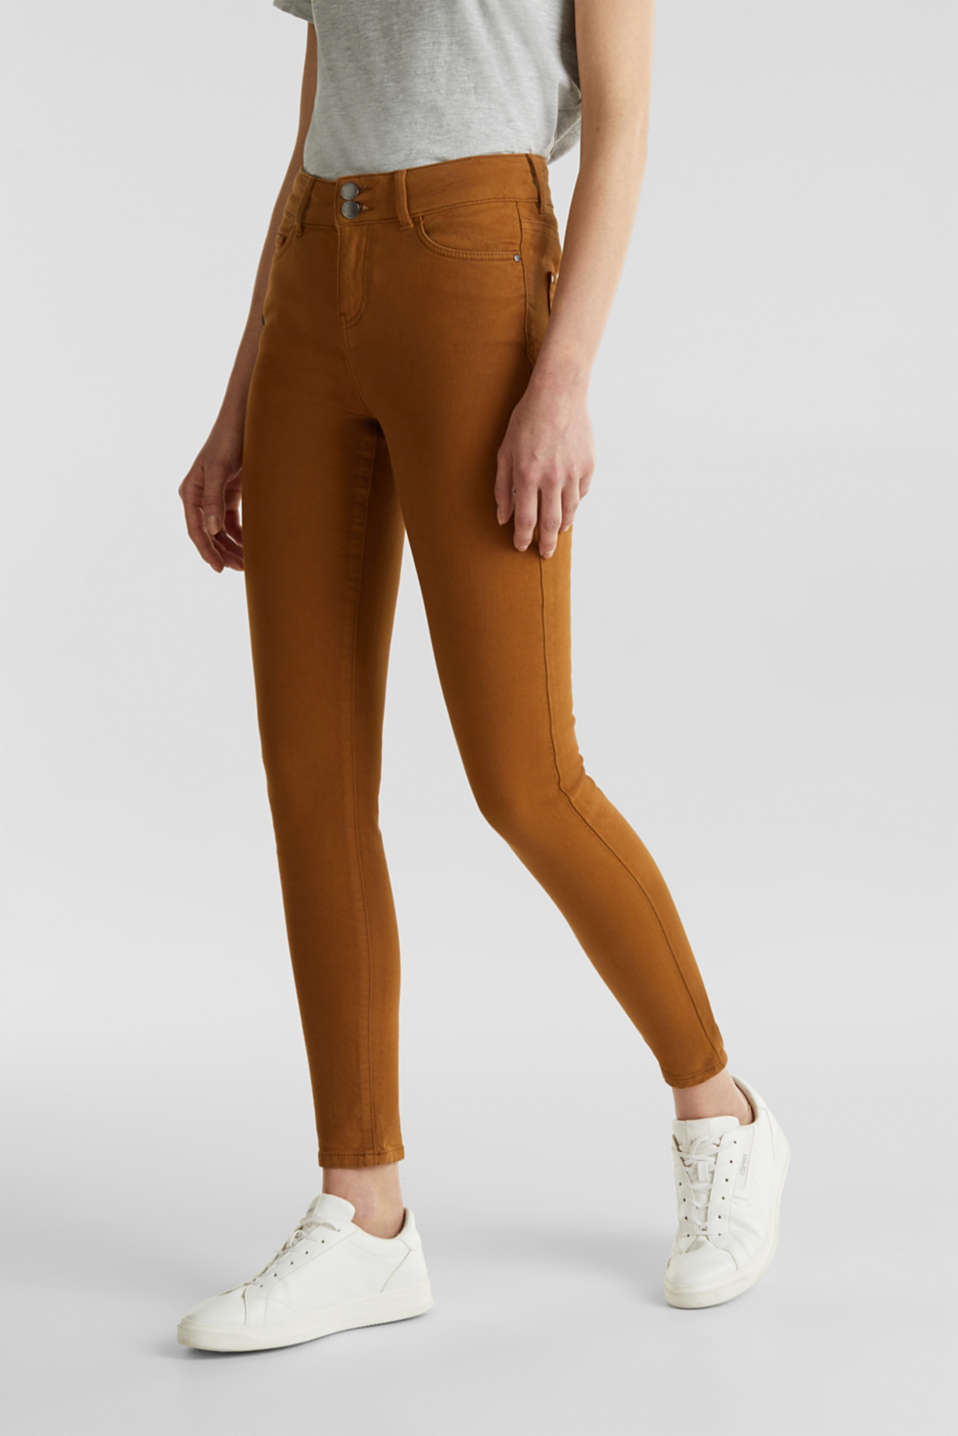 Esprit - Colored Stretch-Jeans mit Doppelknopf